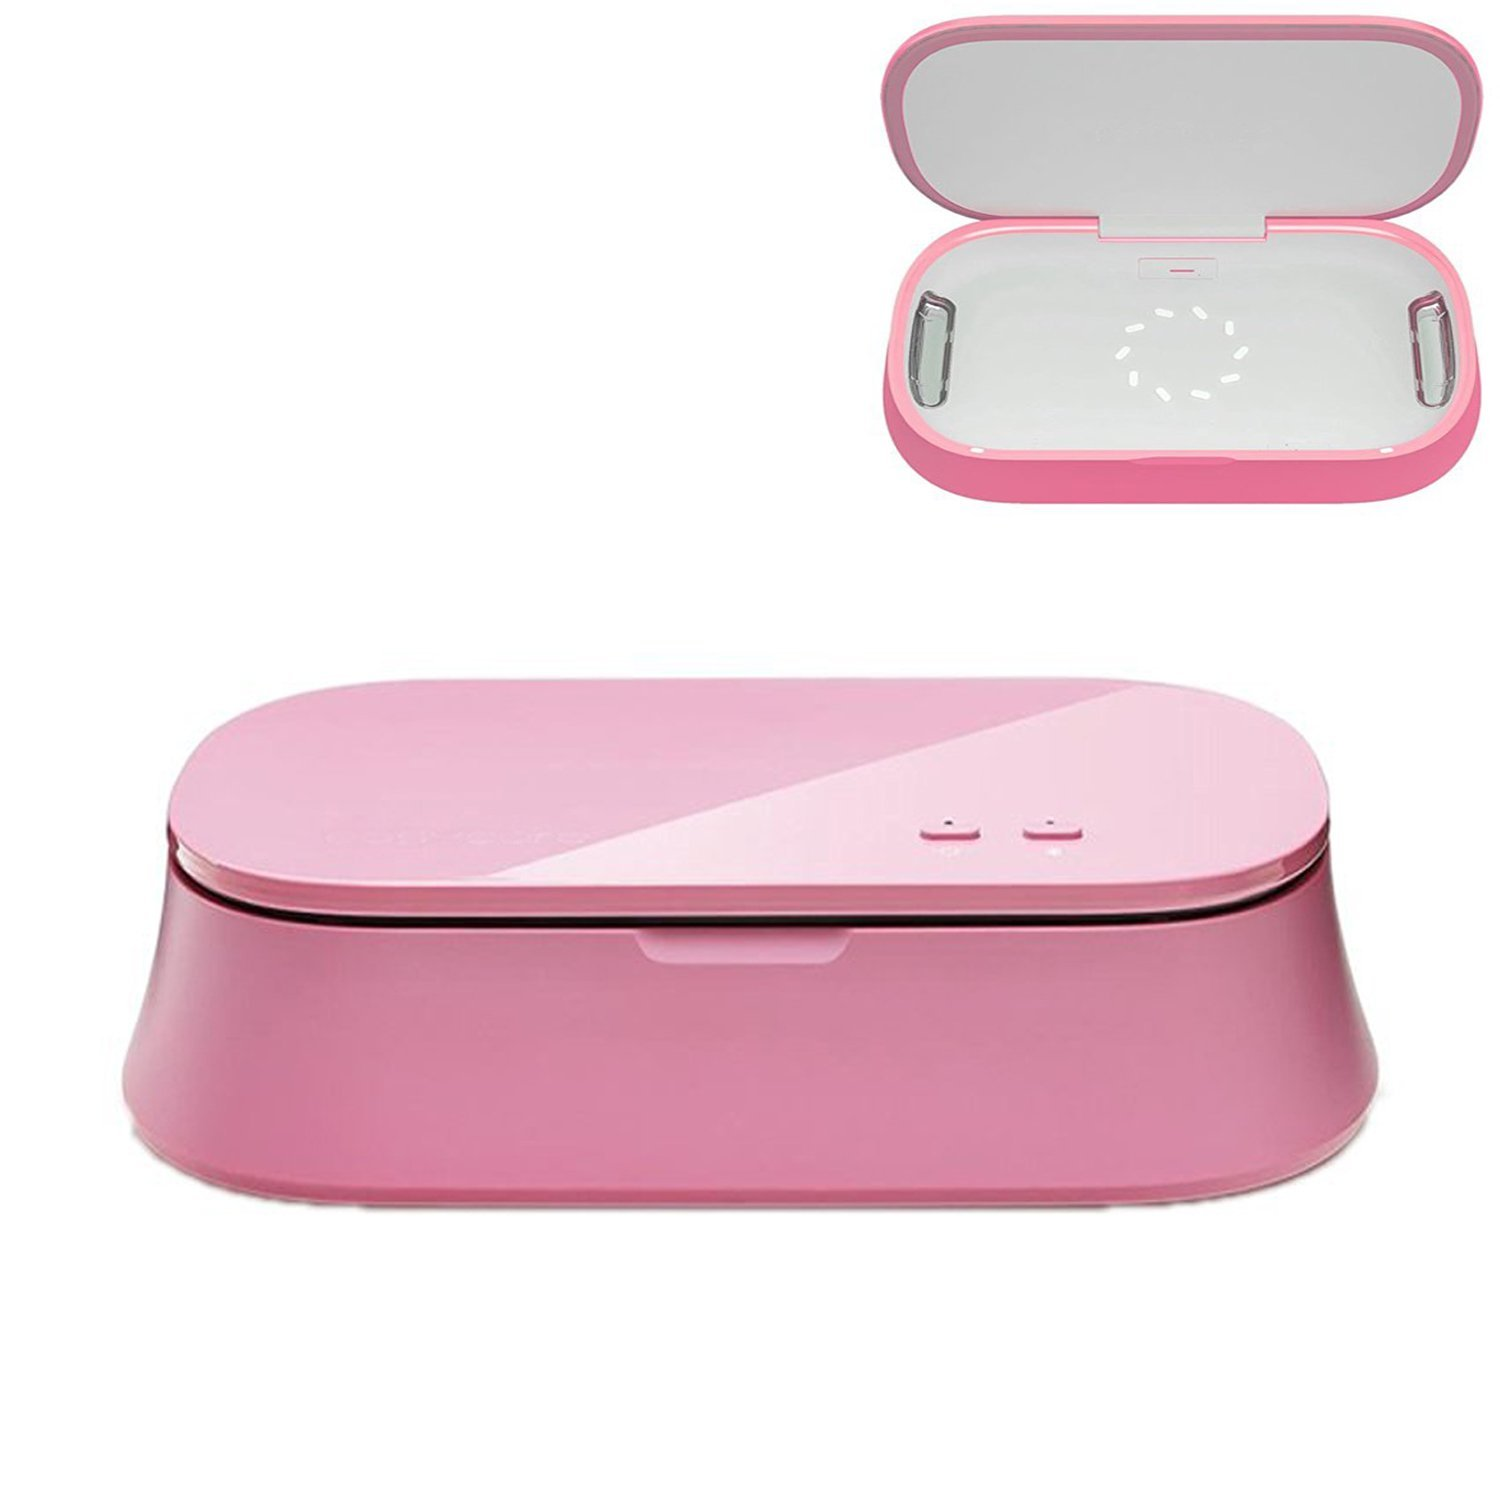 UV Sterilizer,Emontek UV Light Cell Phone Sterilizer Portable Mobile Phone Disinfector,Smartphone Sanitizer Cell Phone Cleaner,SPA House for Phone,Watch and Jewelry (USB Charger) (Pink)